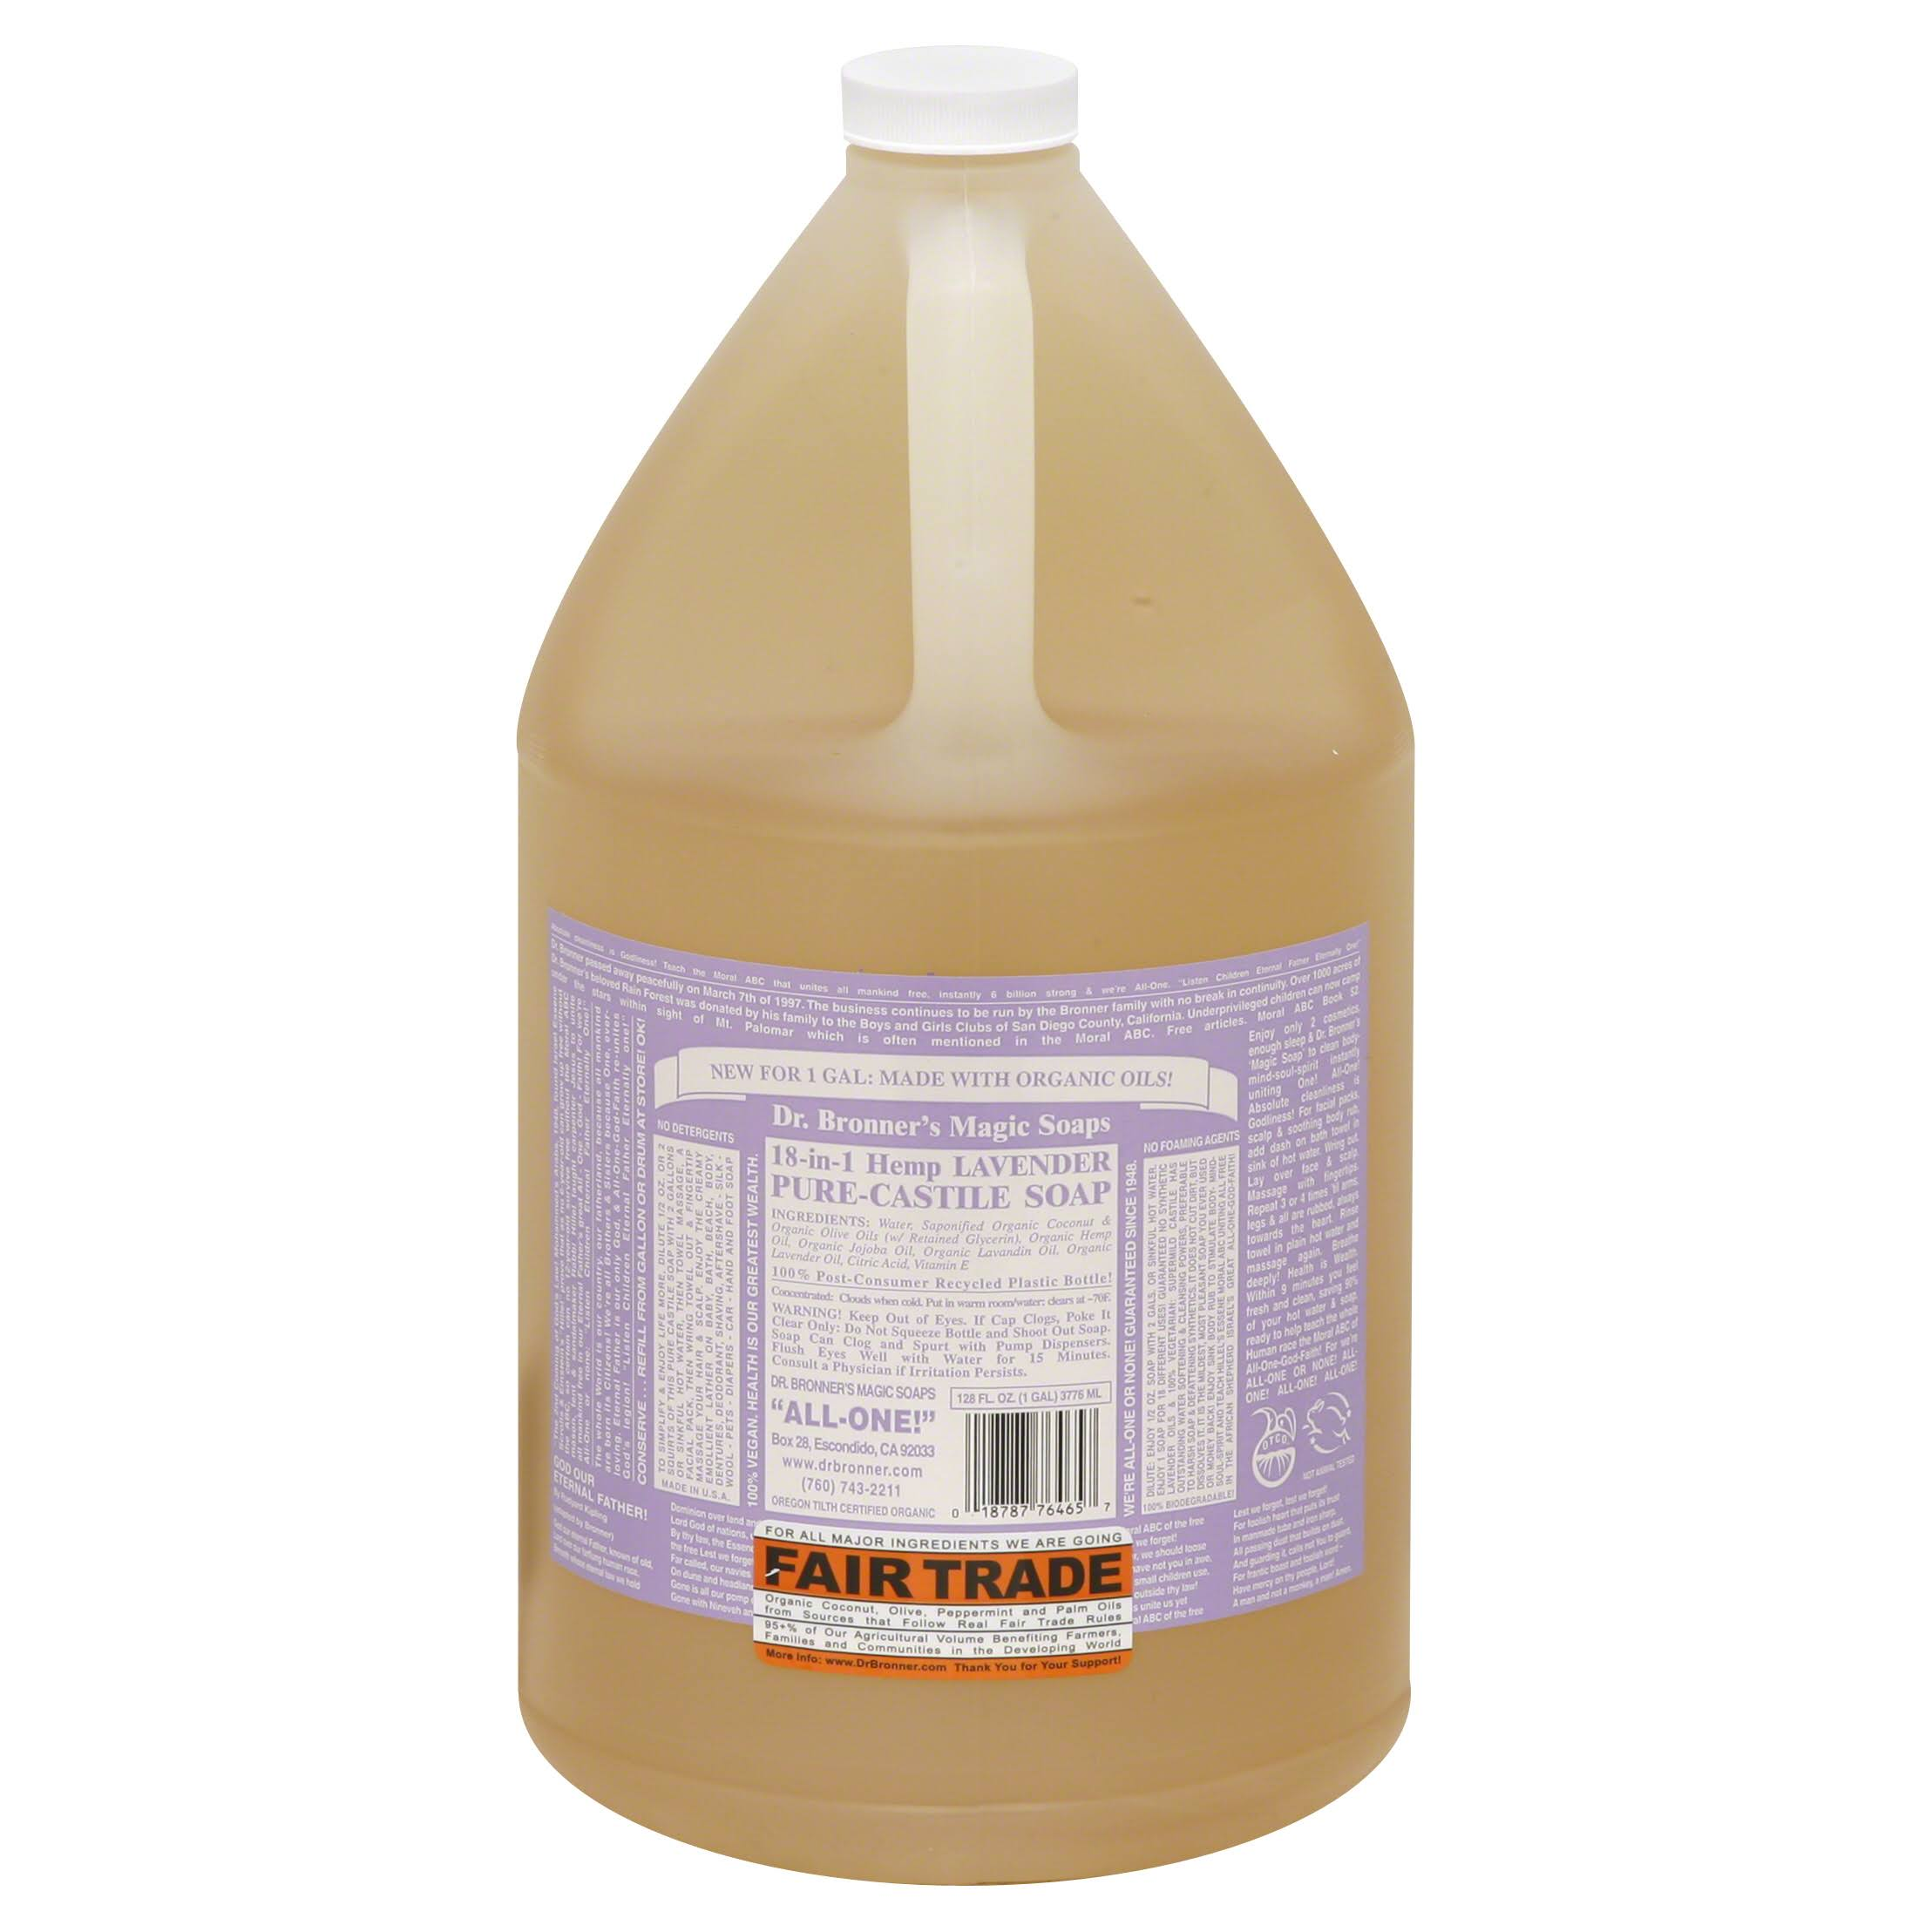 Dr. Bronner's Pure-Castile Liquid Soap - Lavender, 1 Gallon